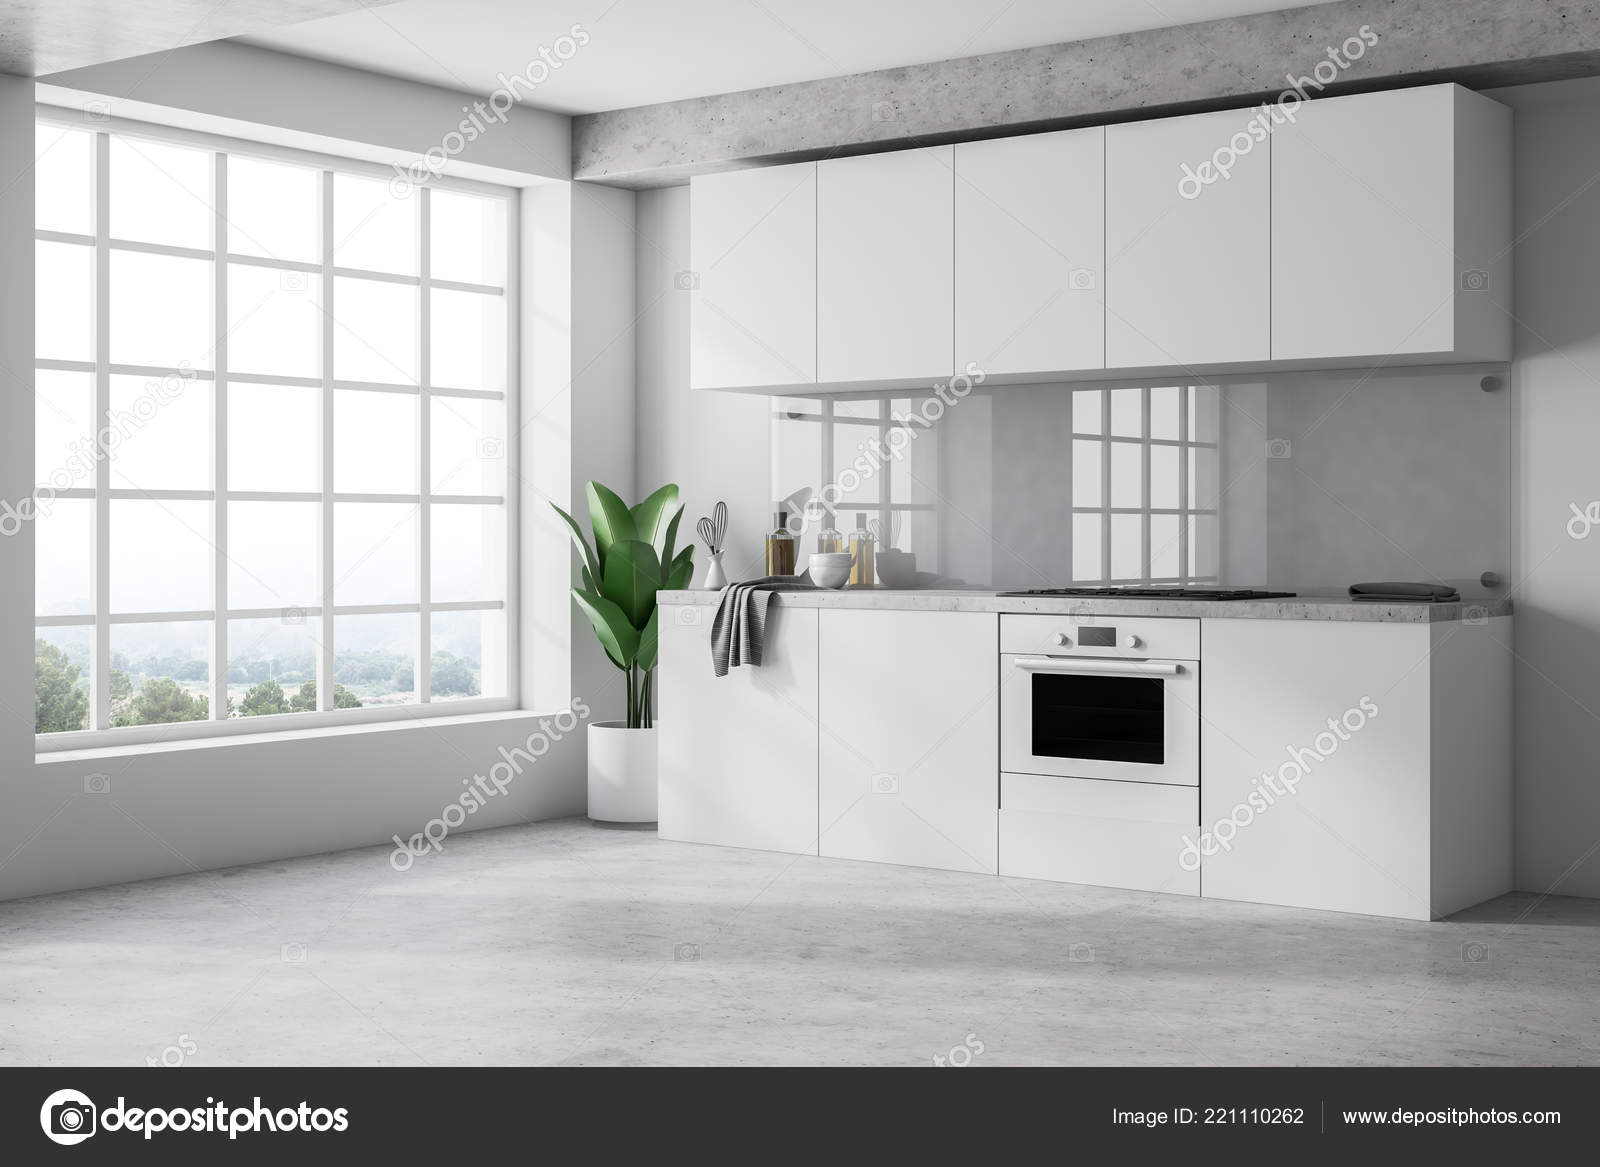 Concrete Wall Treatment Minimalistic Kitchen Interior White Walls Concrete Floor